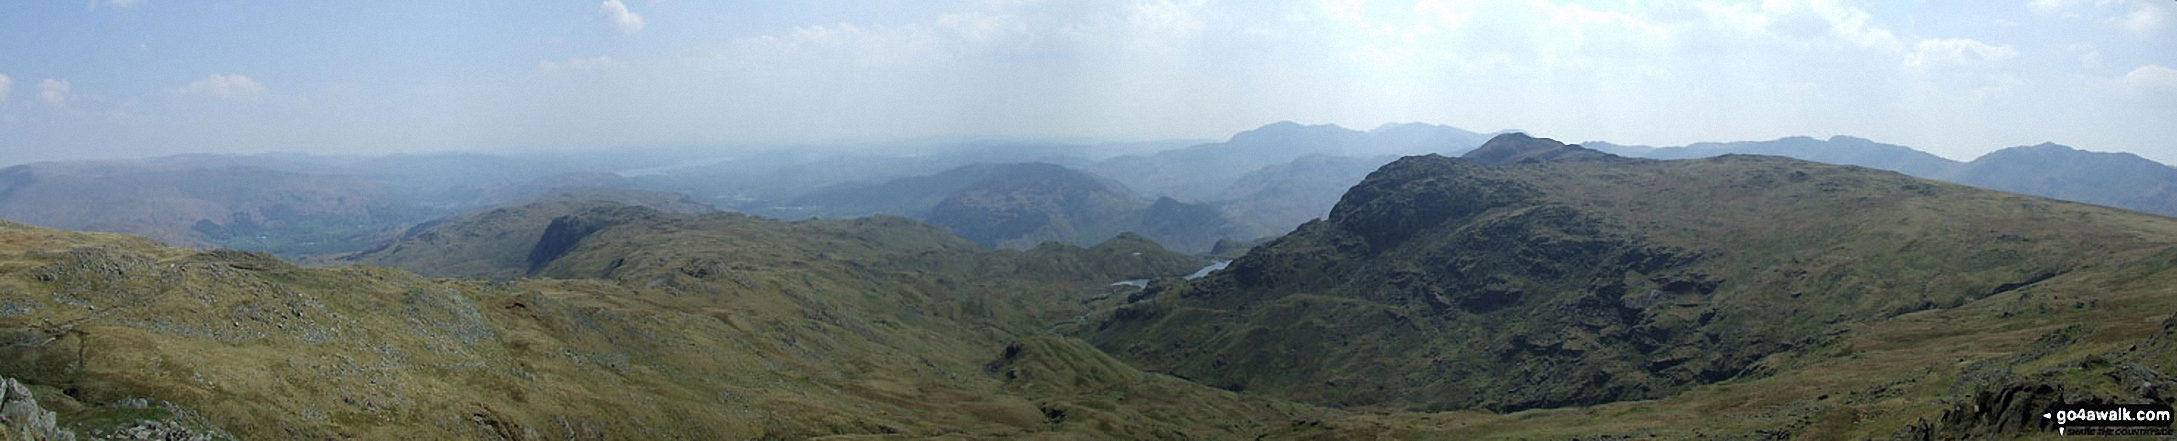 The view from Sergeant Man featuring Blea Rigg (centre left), Lingmoor Fell (centre distance), Stickle Tarn (partially hidden) and Pavey Ark with Harrison Stickle beyond (The Langdale Pikes) (centre right)